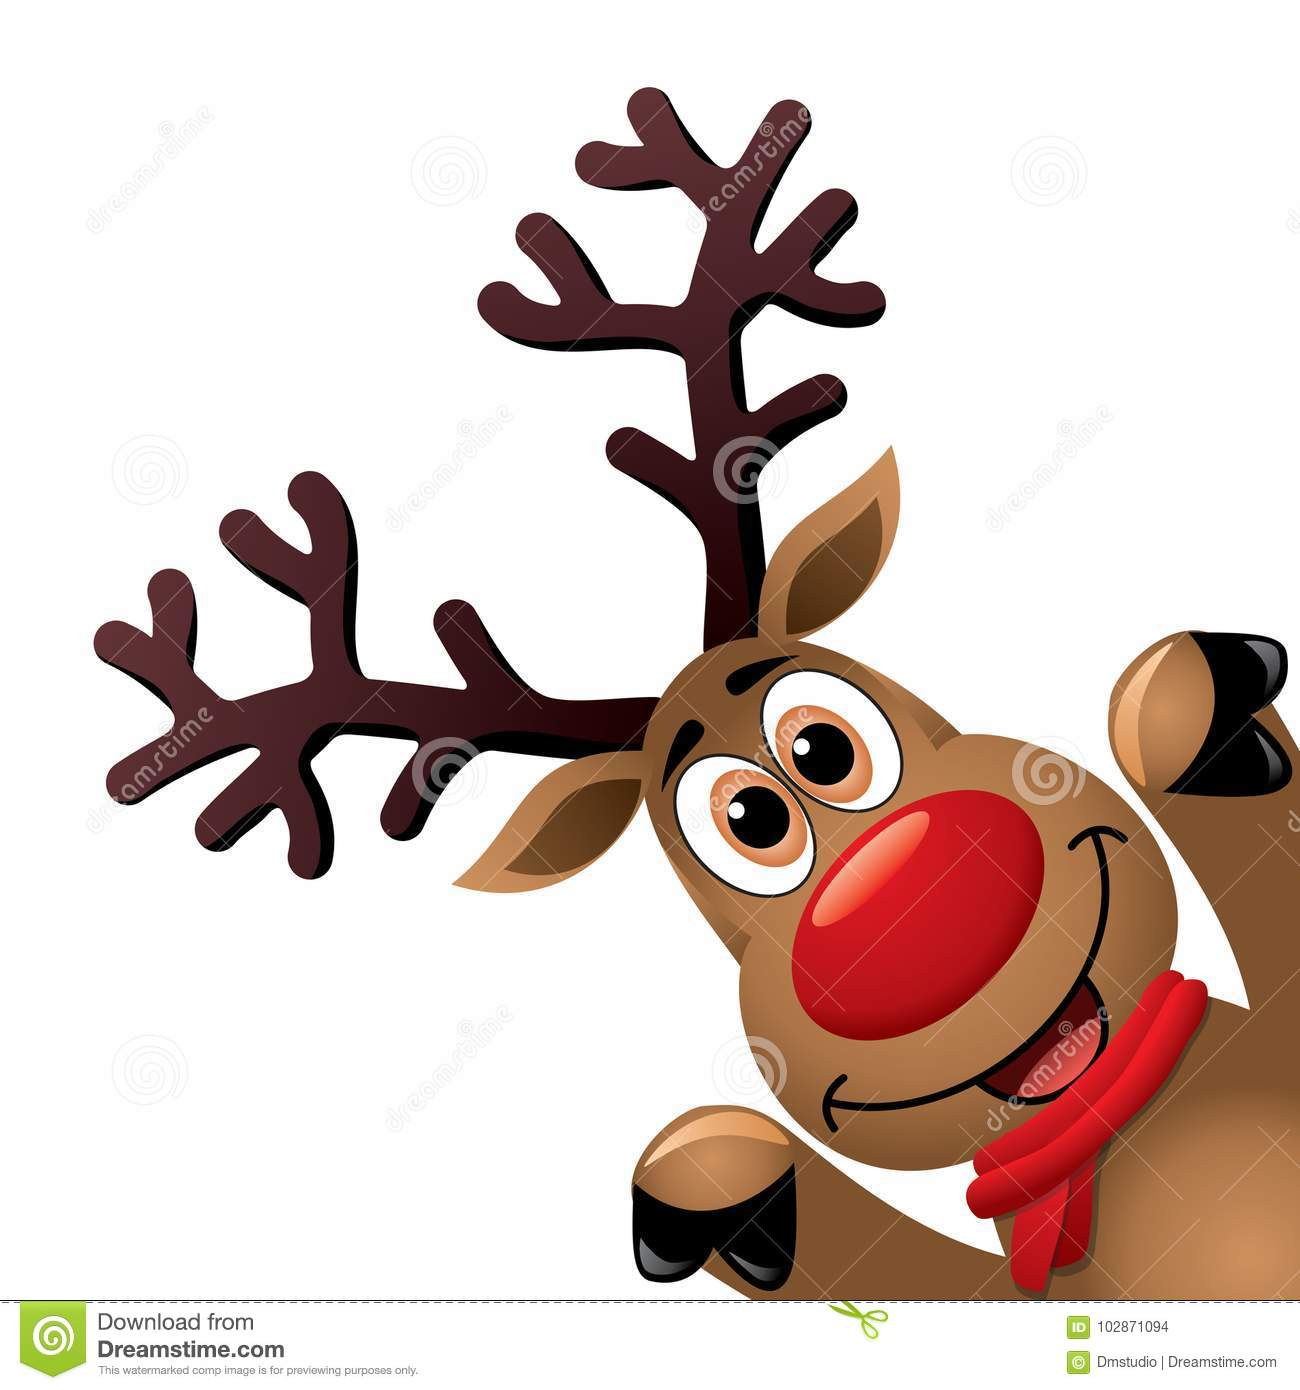 Christmas Reindeer.Xmas Drawing Of Funny Red Nosed Reindeer Vector Stock